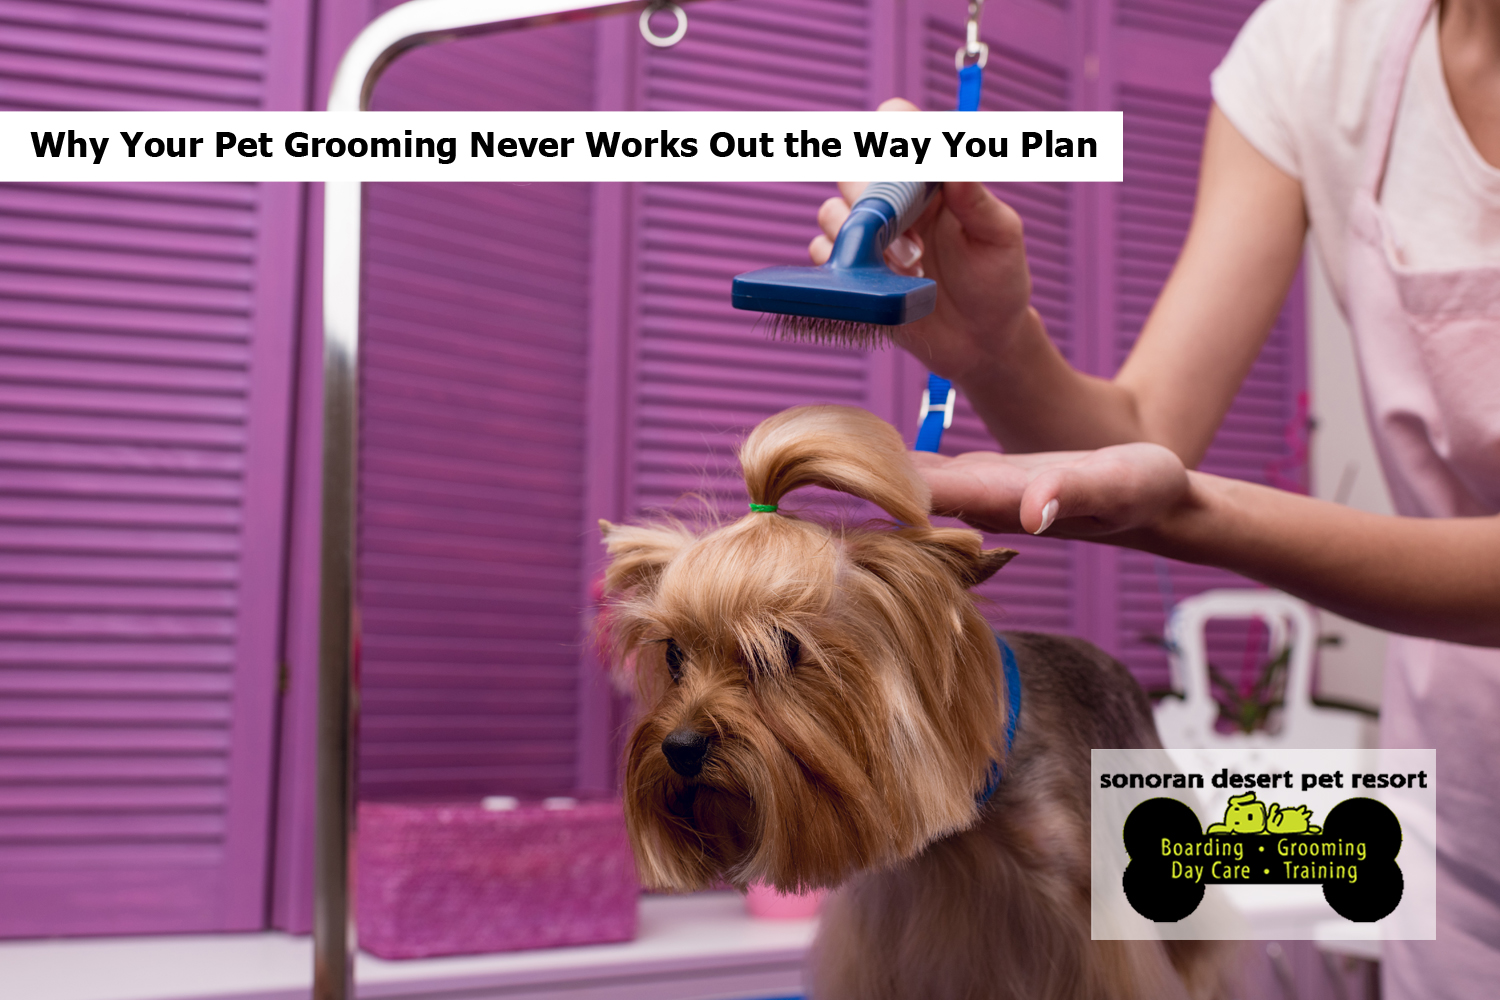 Why Your Pet Grooming Never Works Out the Way You Plan